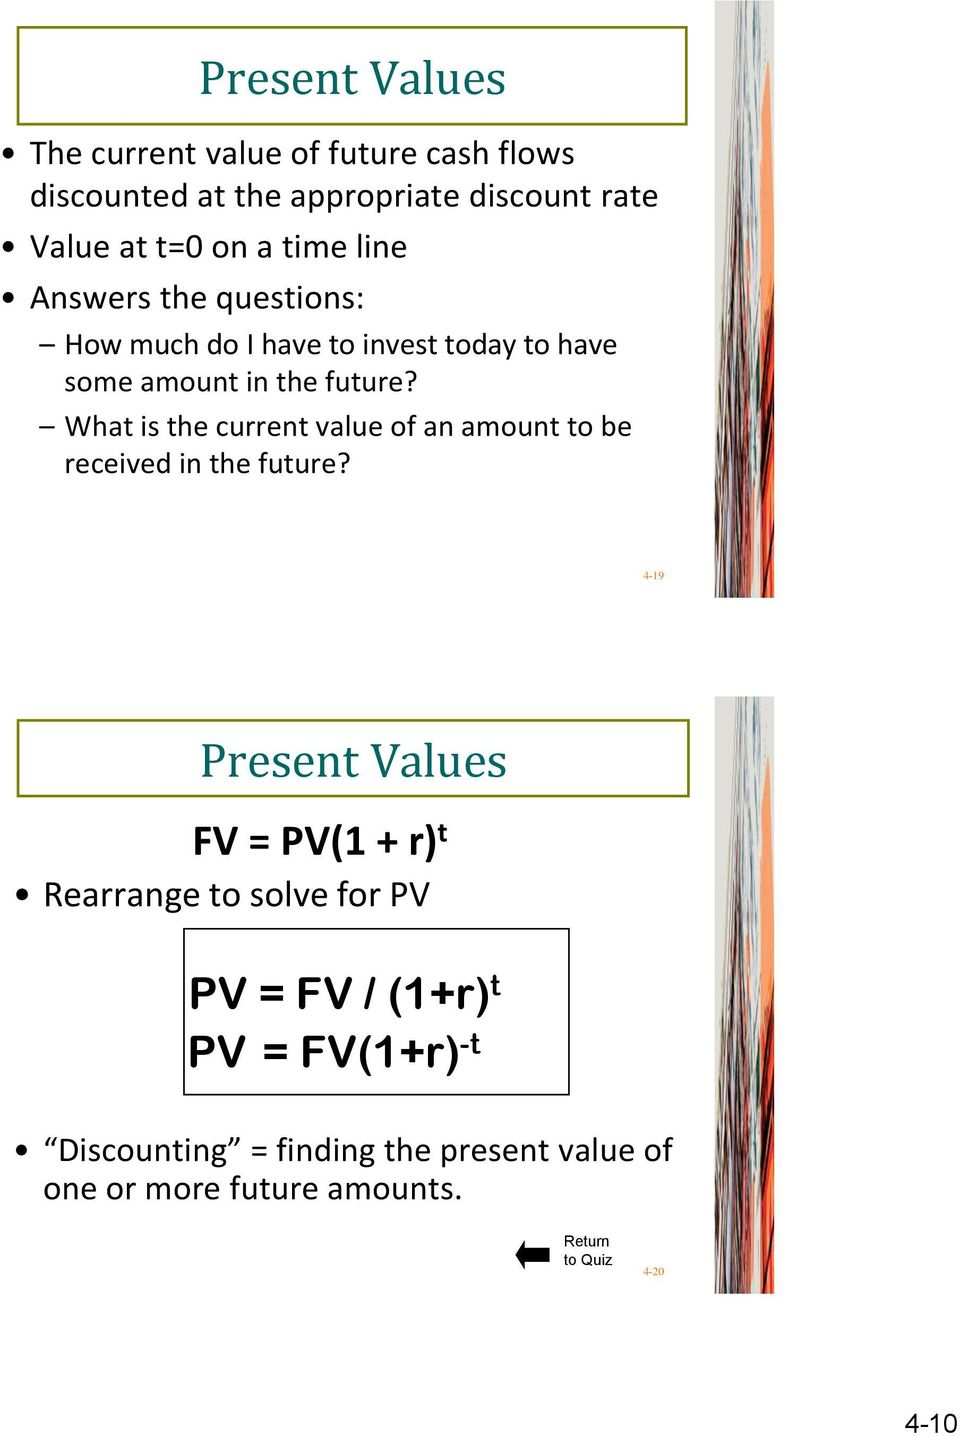 What is the current value of an amount to be received in the future?